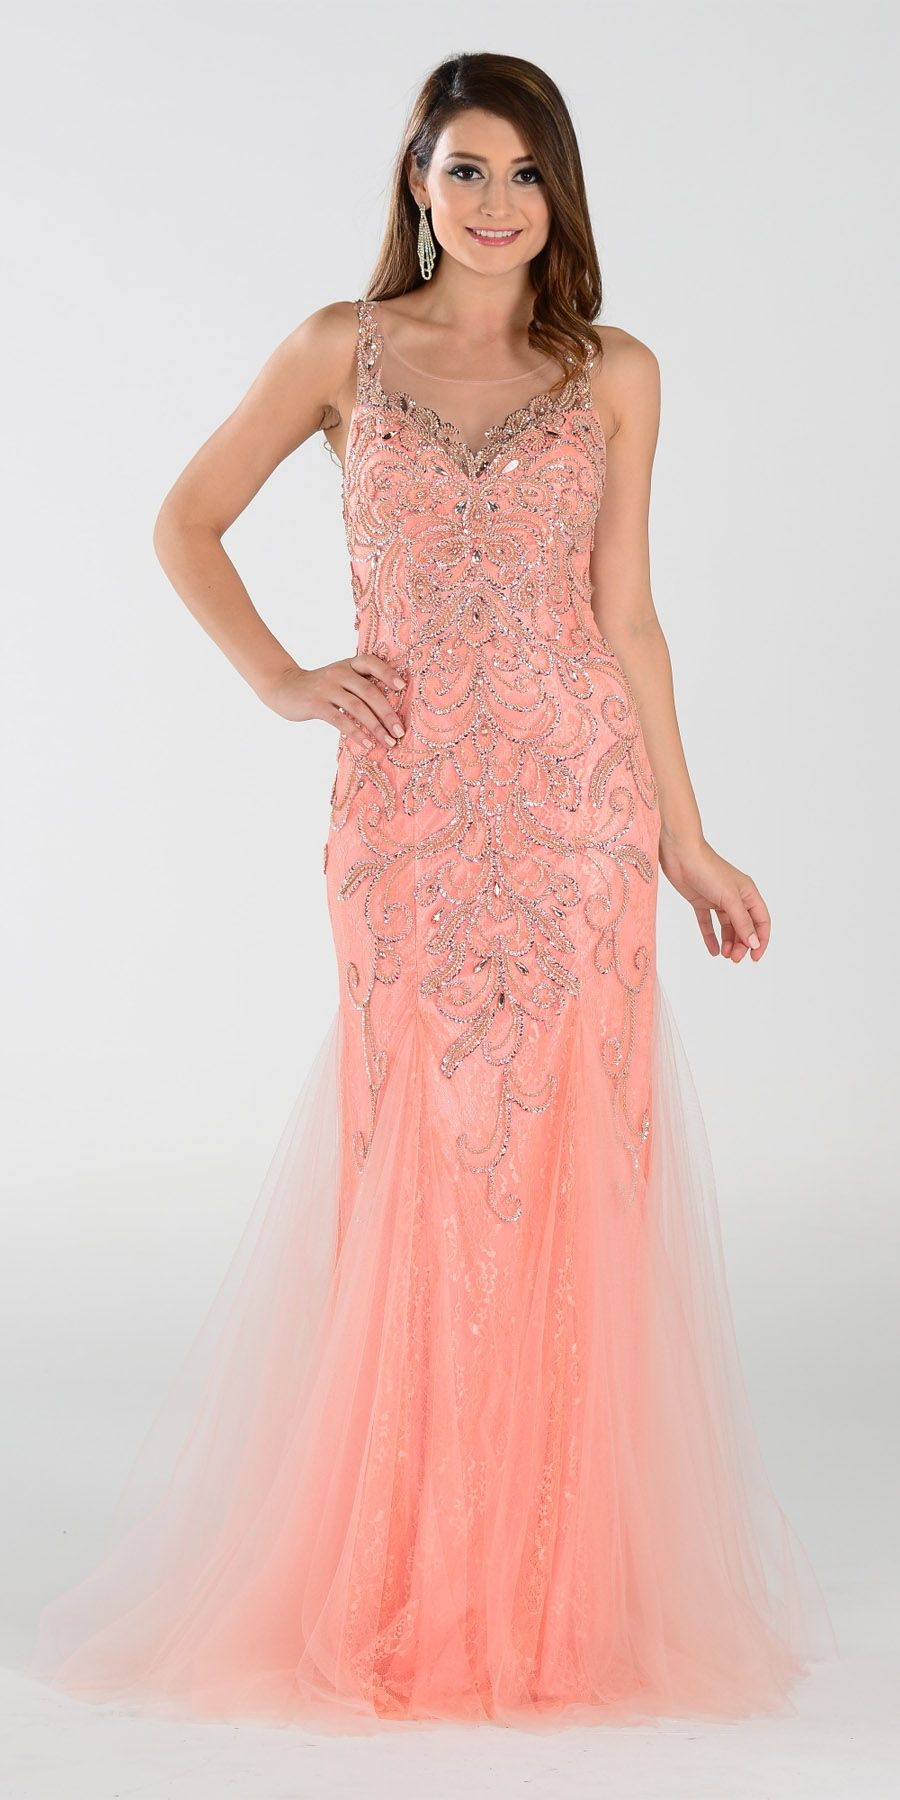 Poly USA 7322 Long Mermaid Prom Dress Coral Sleeveless | Hermosa y ...